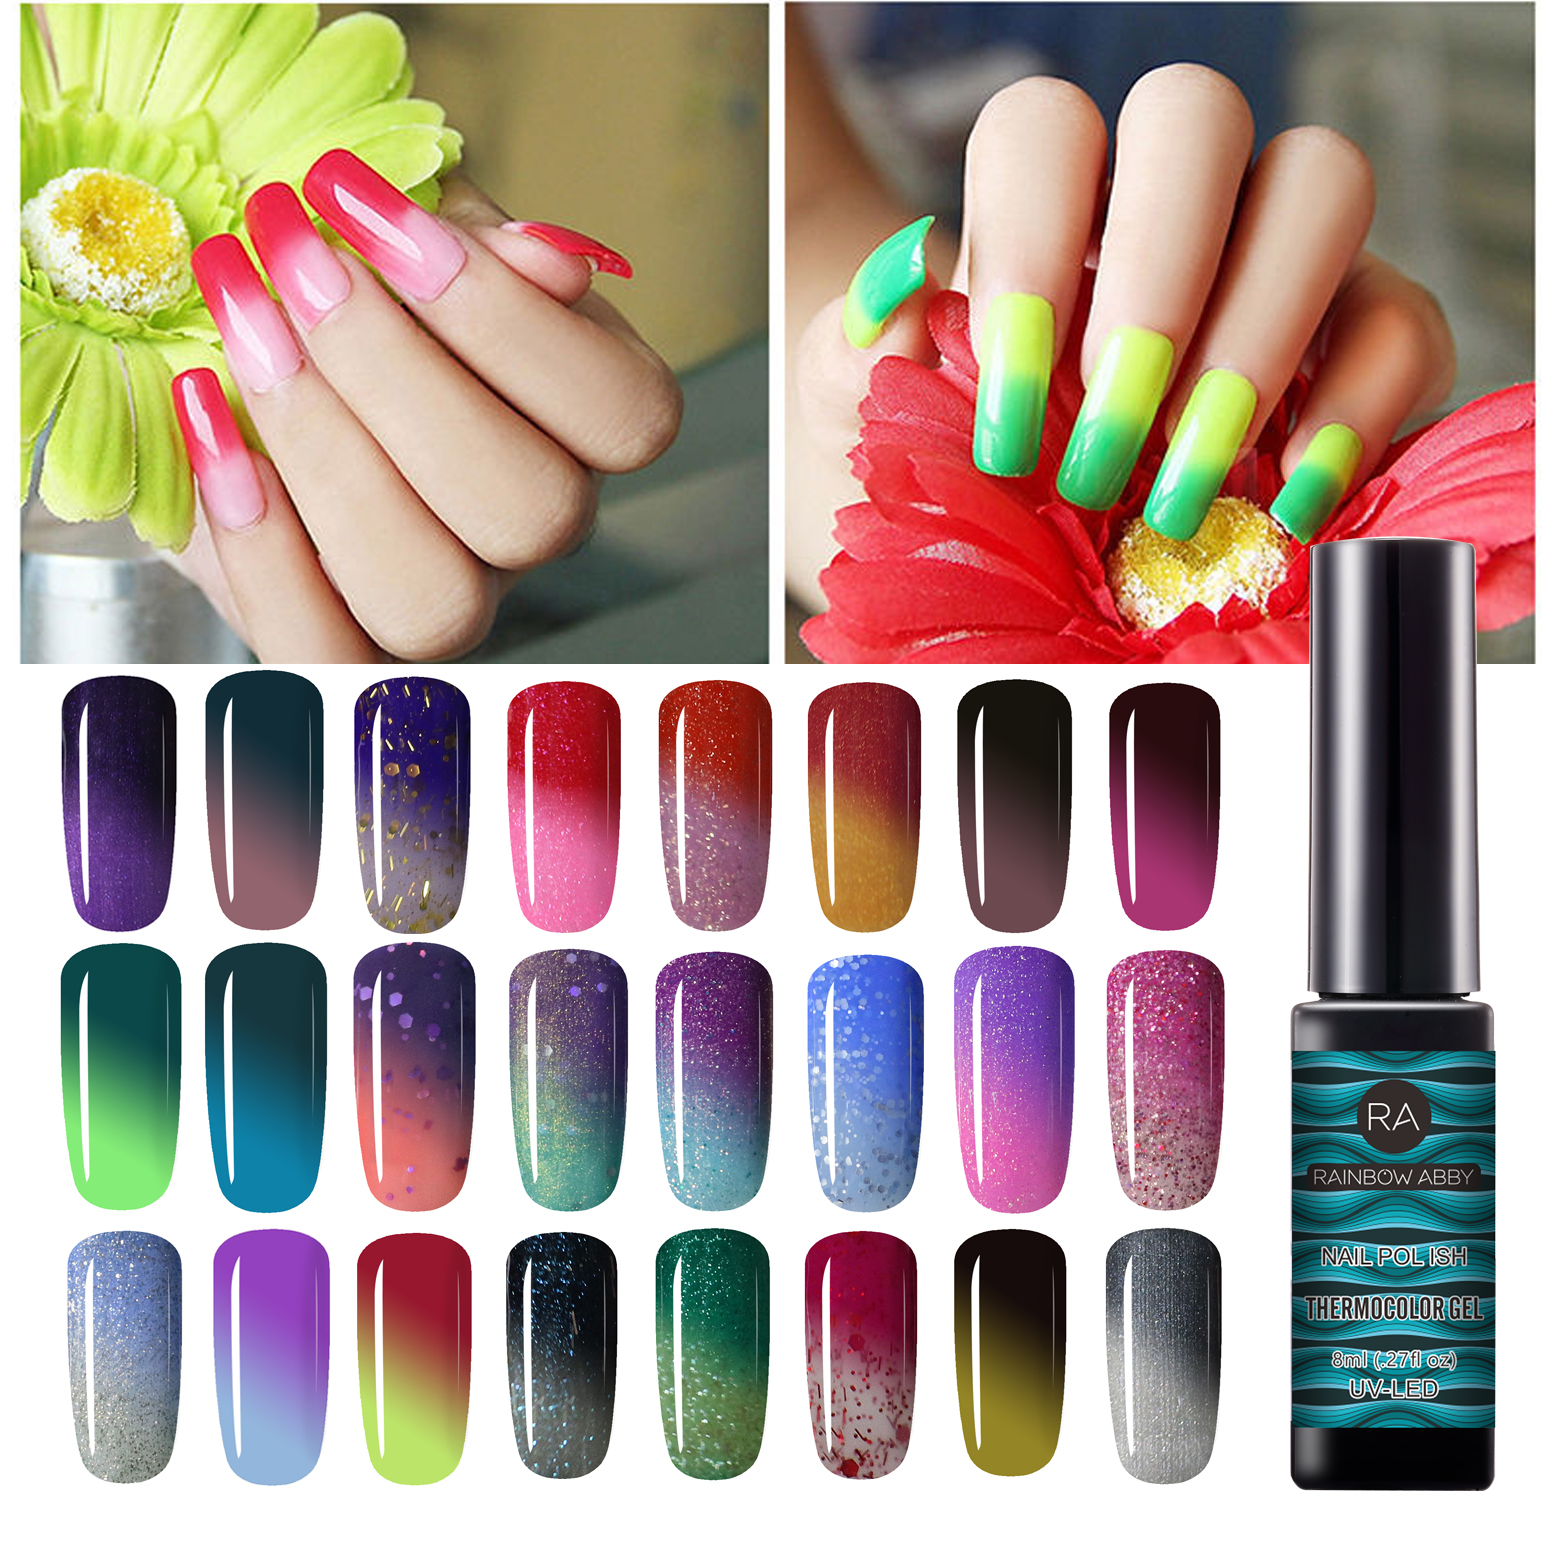 Thermolack Kaufen Ra Thermo Thermolack Farbwechsel Nagellack Nail Color